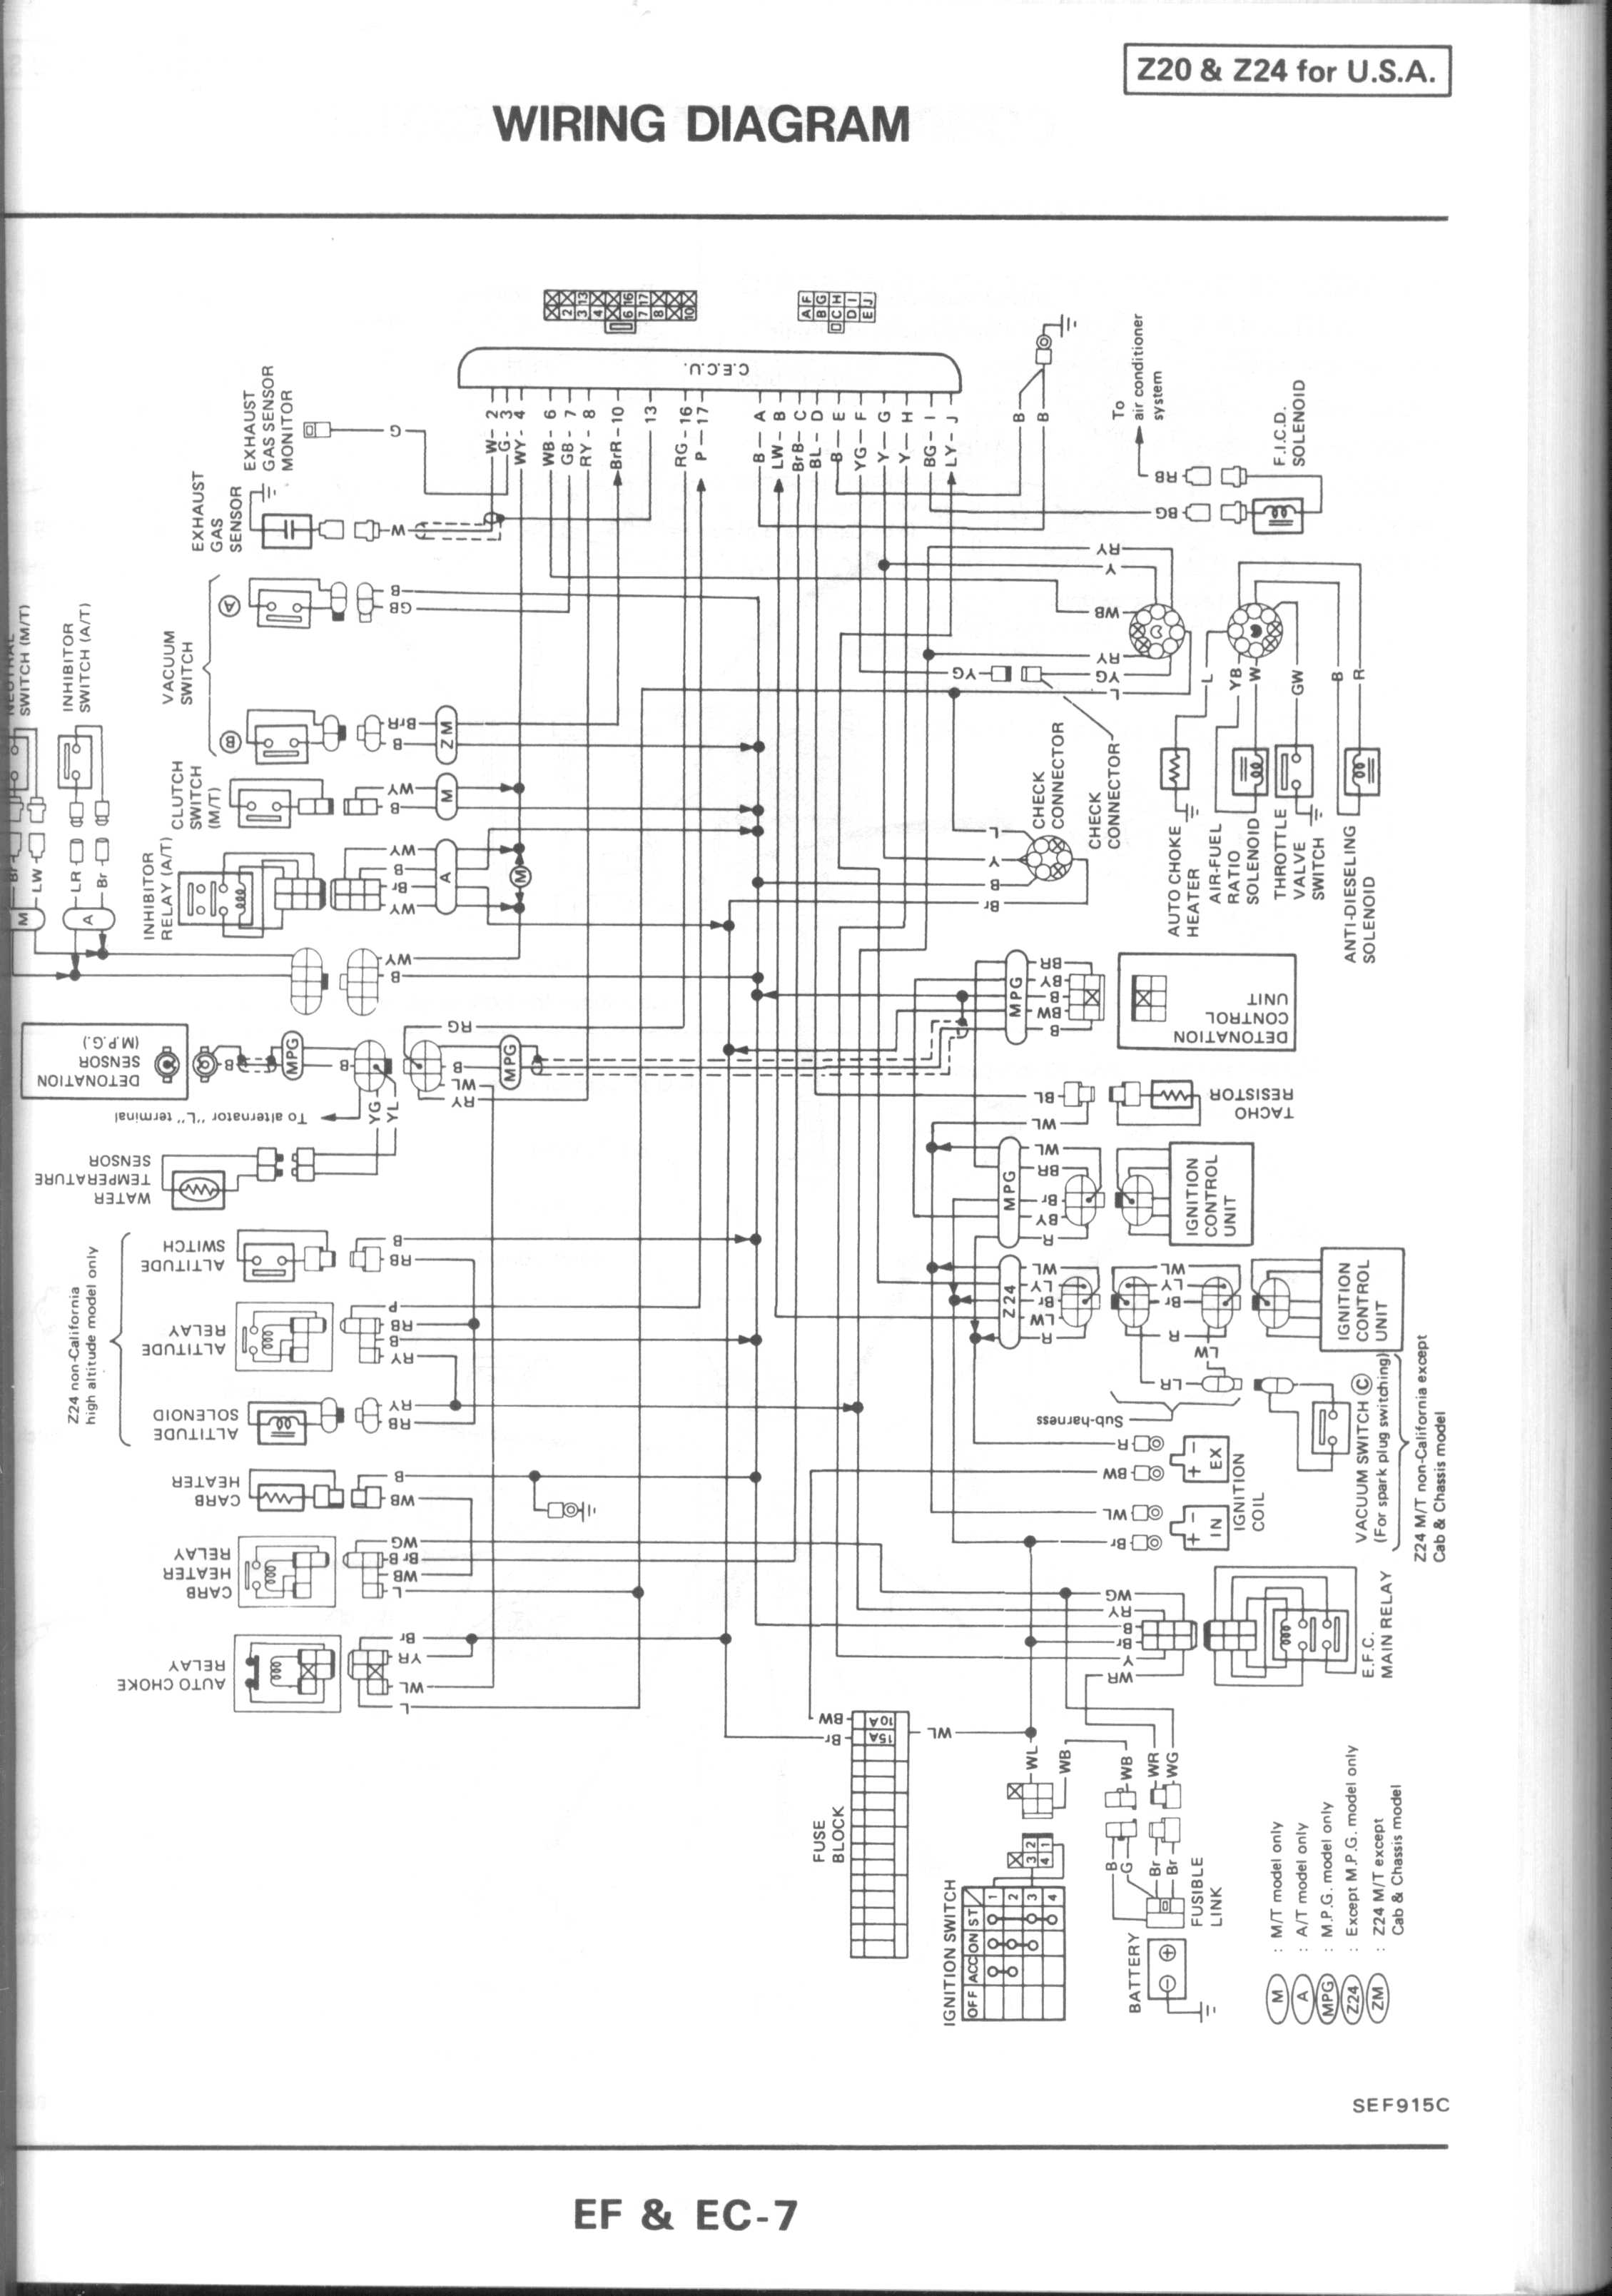 1986 Nissan 300zx Fuse Box Data Wiring Diagram 2004 Sentra Legend 1988 Quest